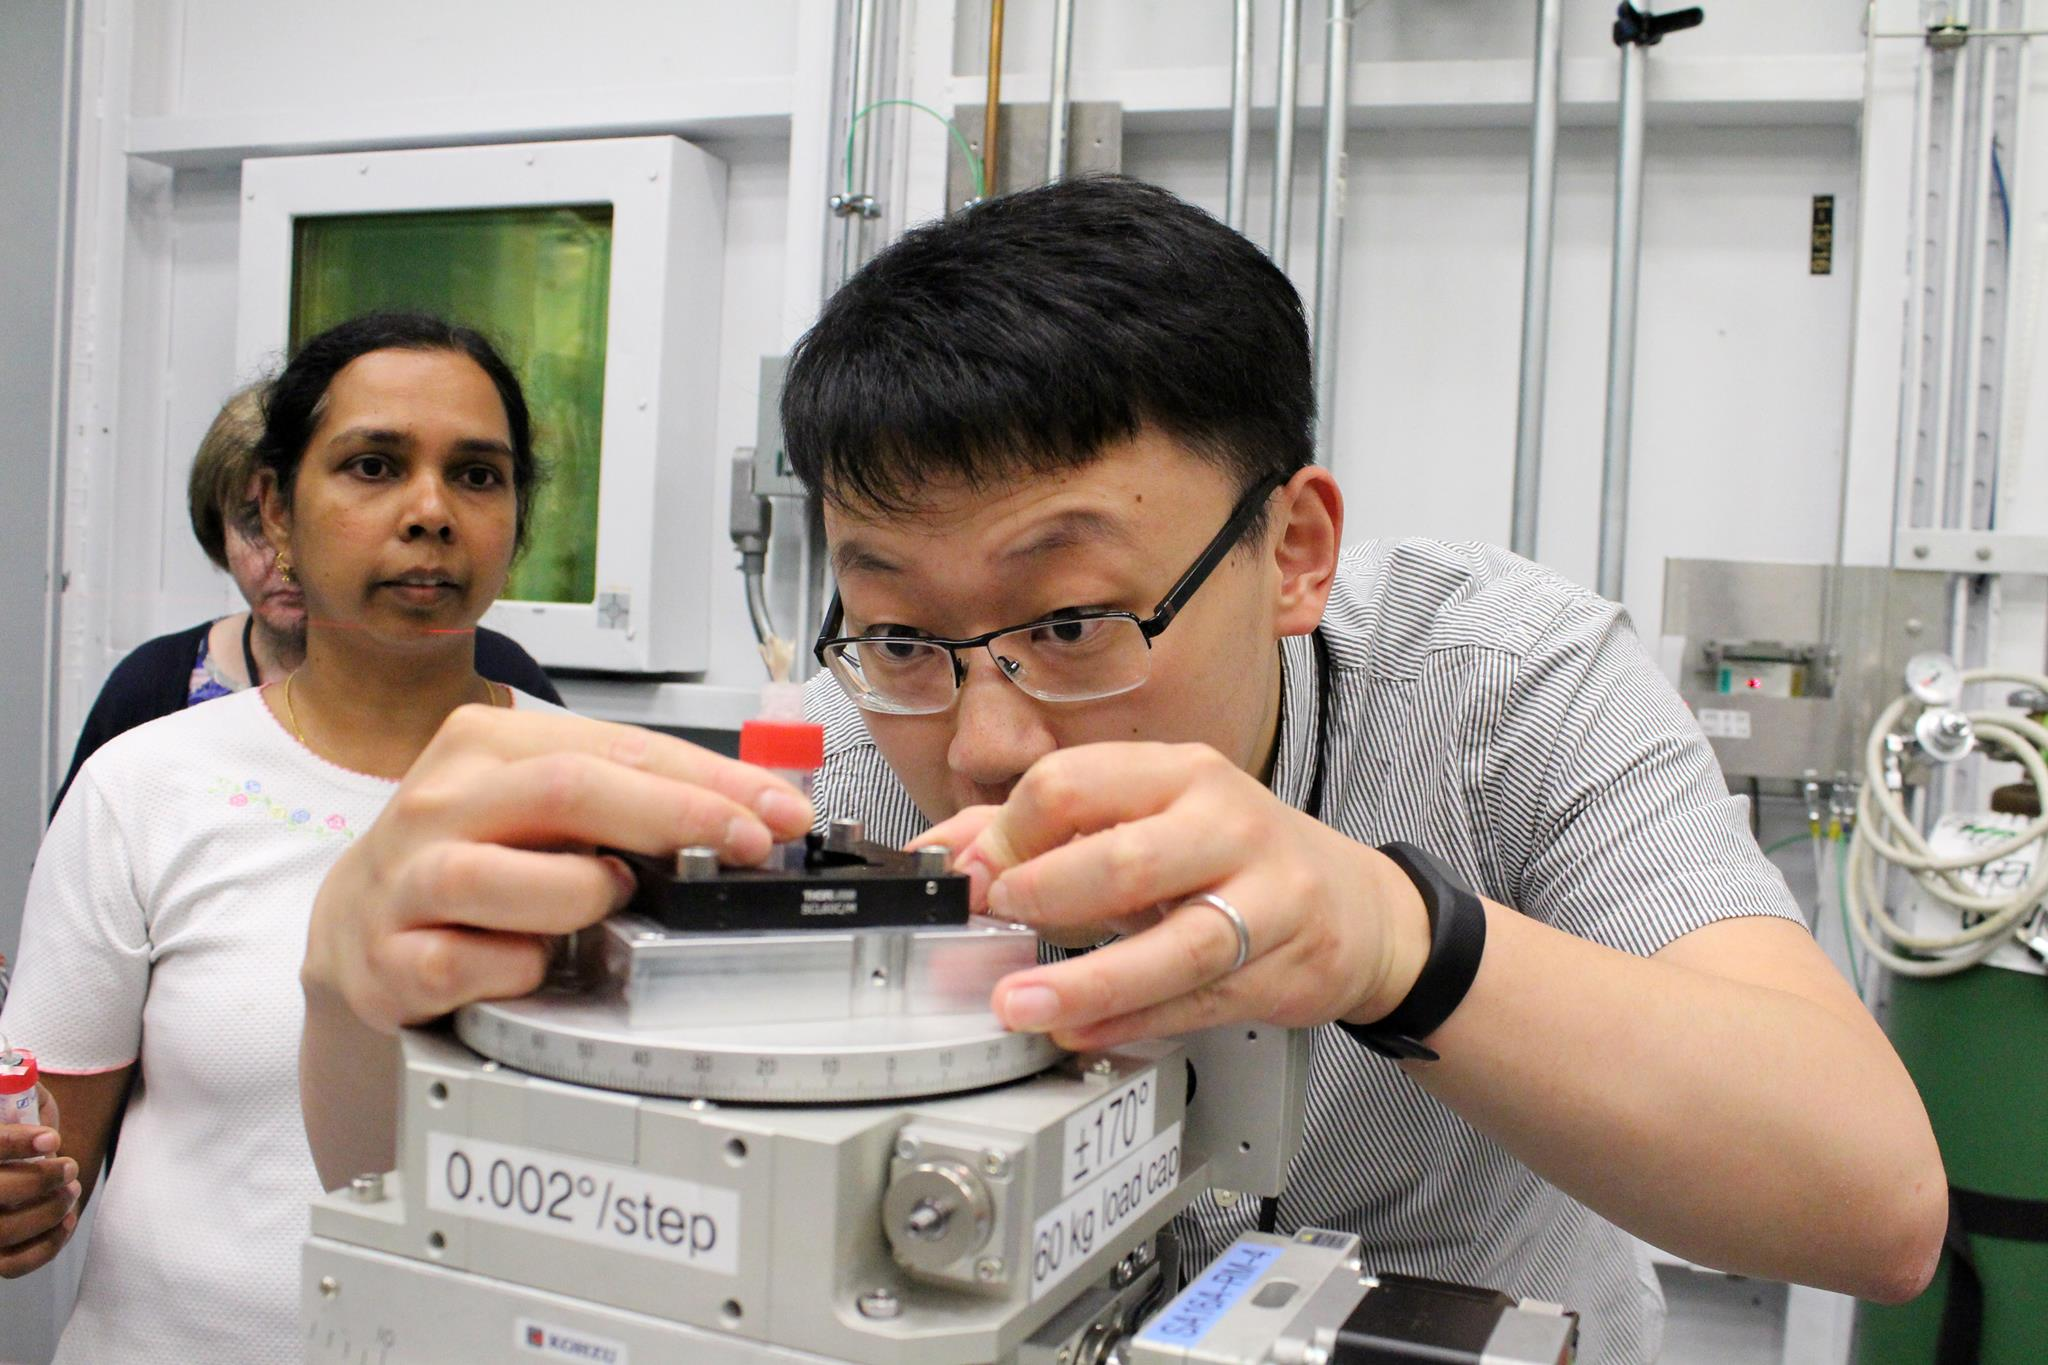 Teng Zhang loads a sample into the beamline for analysis. The flowers his group is studying, members of the Aster family, look like individual flowers, but contain tightly packed assemblies of many small flowers with complex connective tissues.